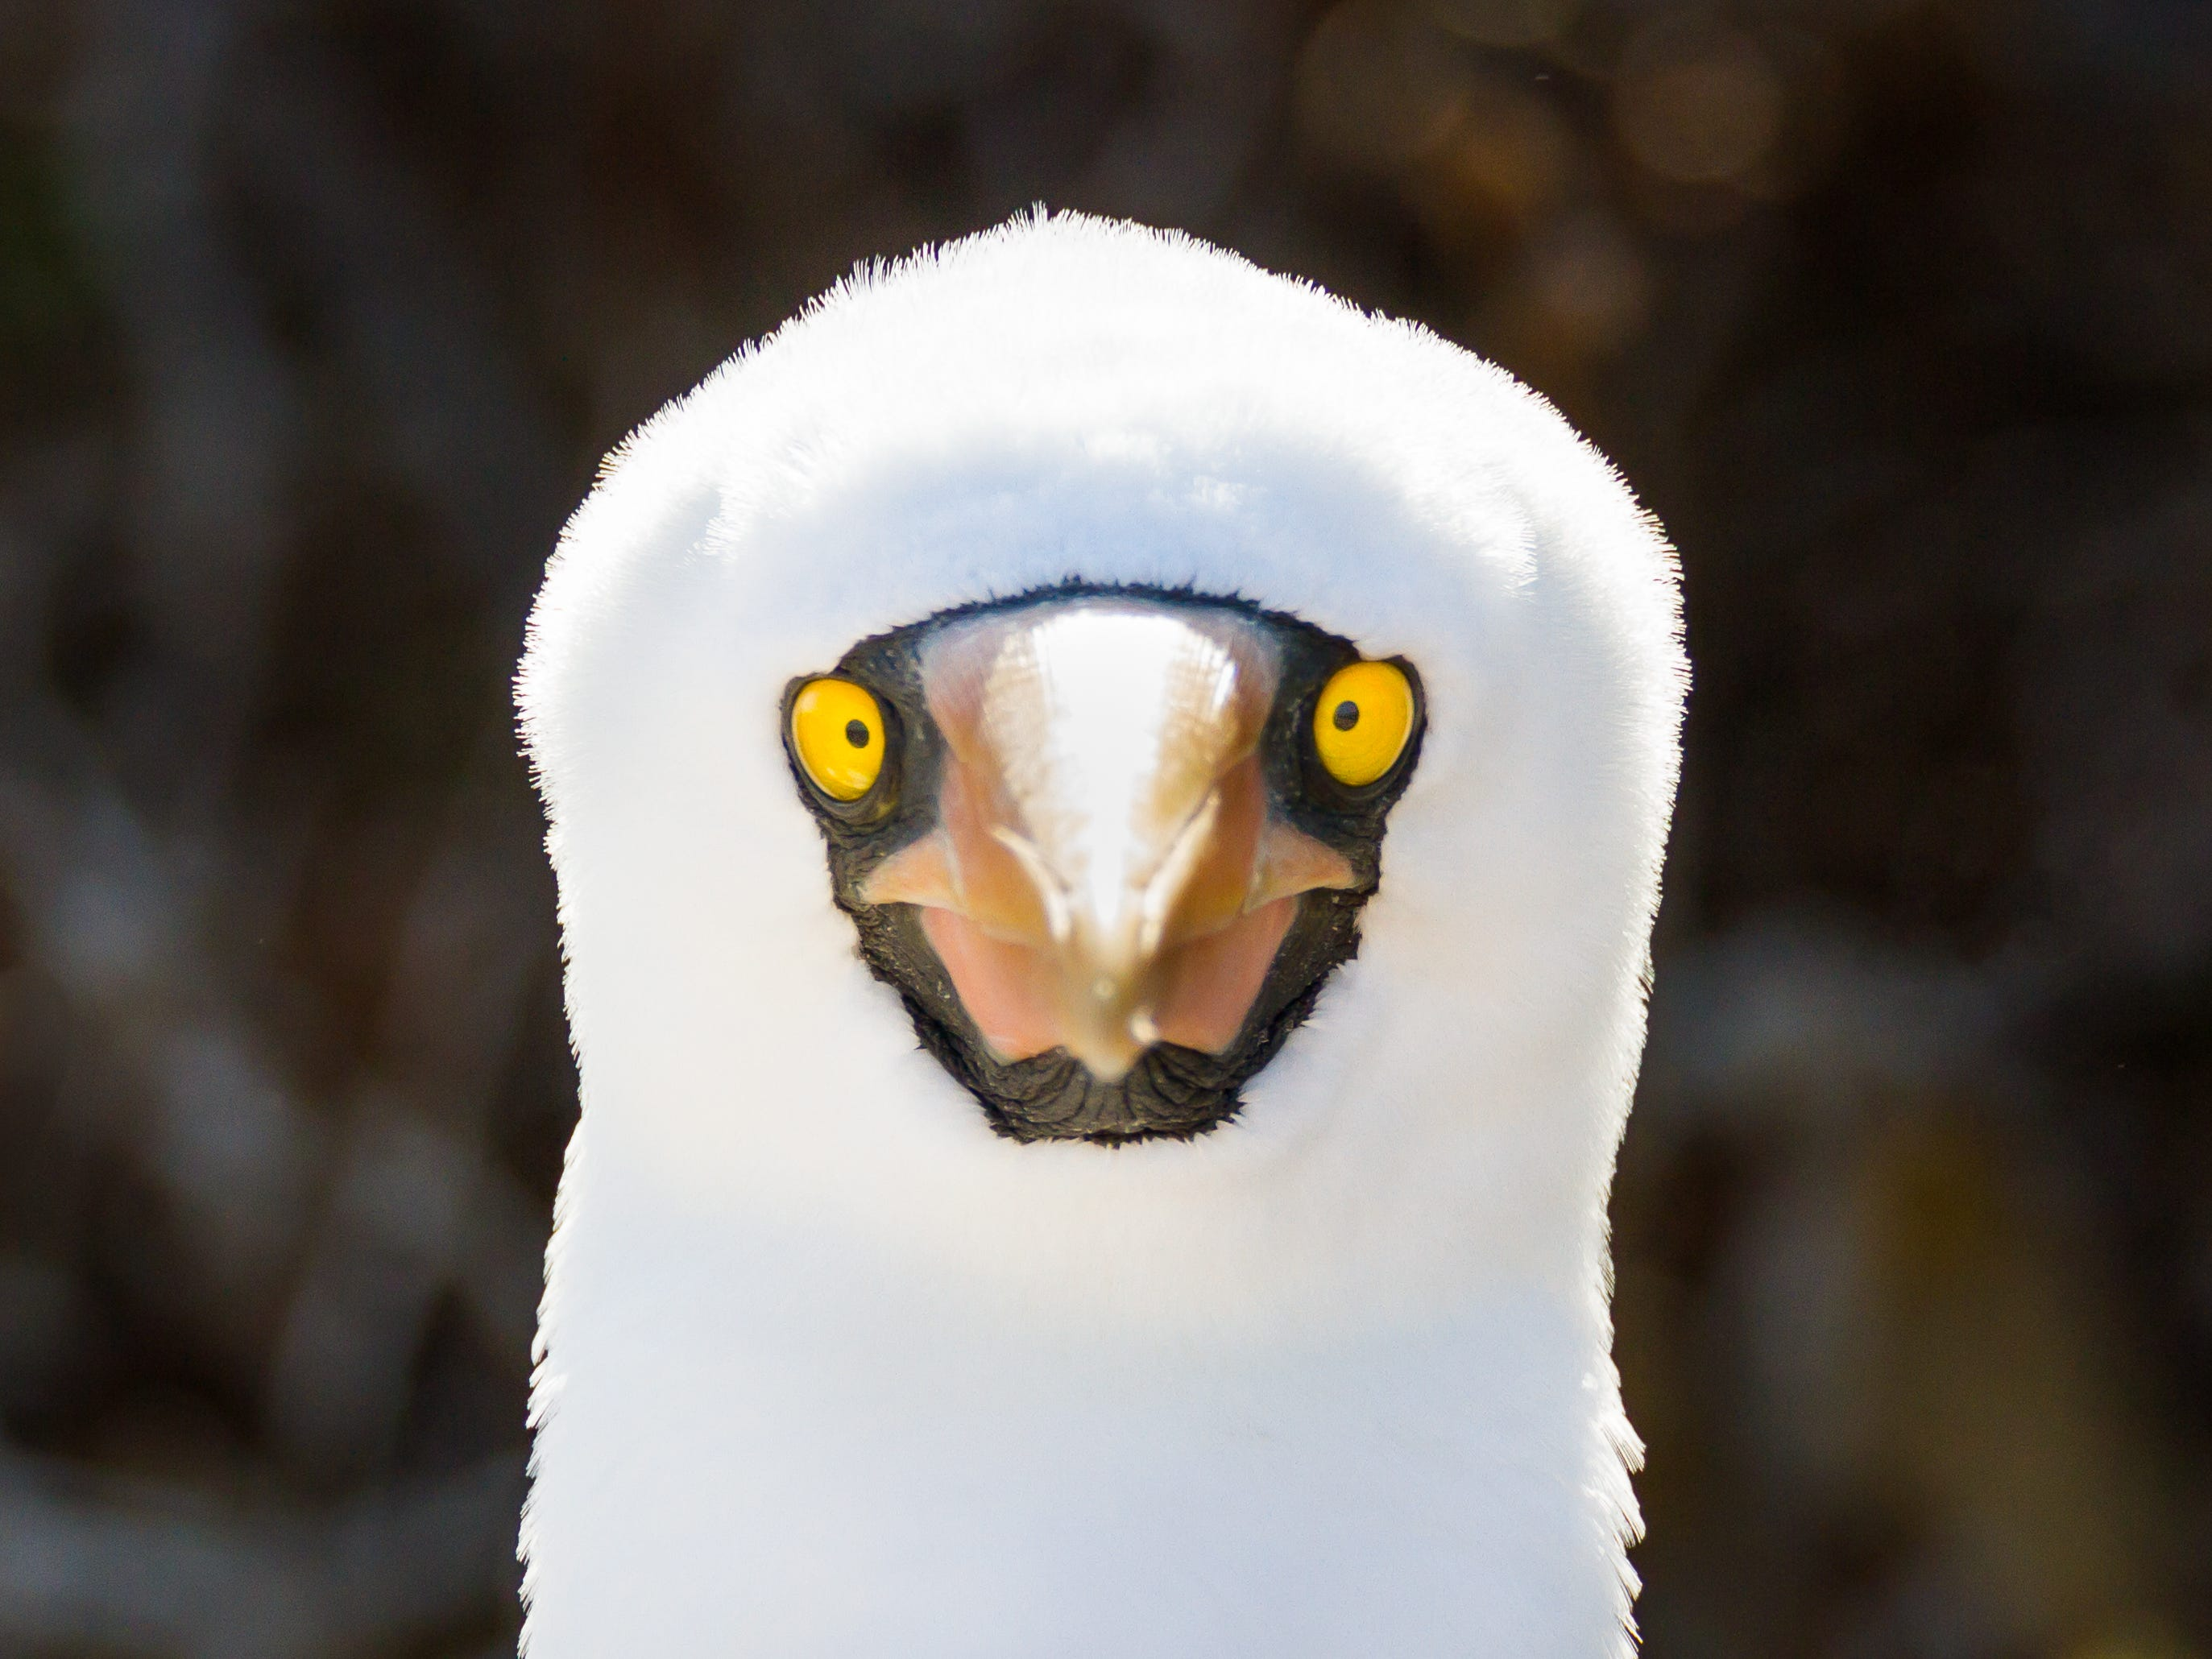 A Nazca booby in the Galapagos Islands, Ecuador.